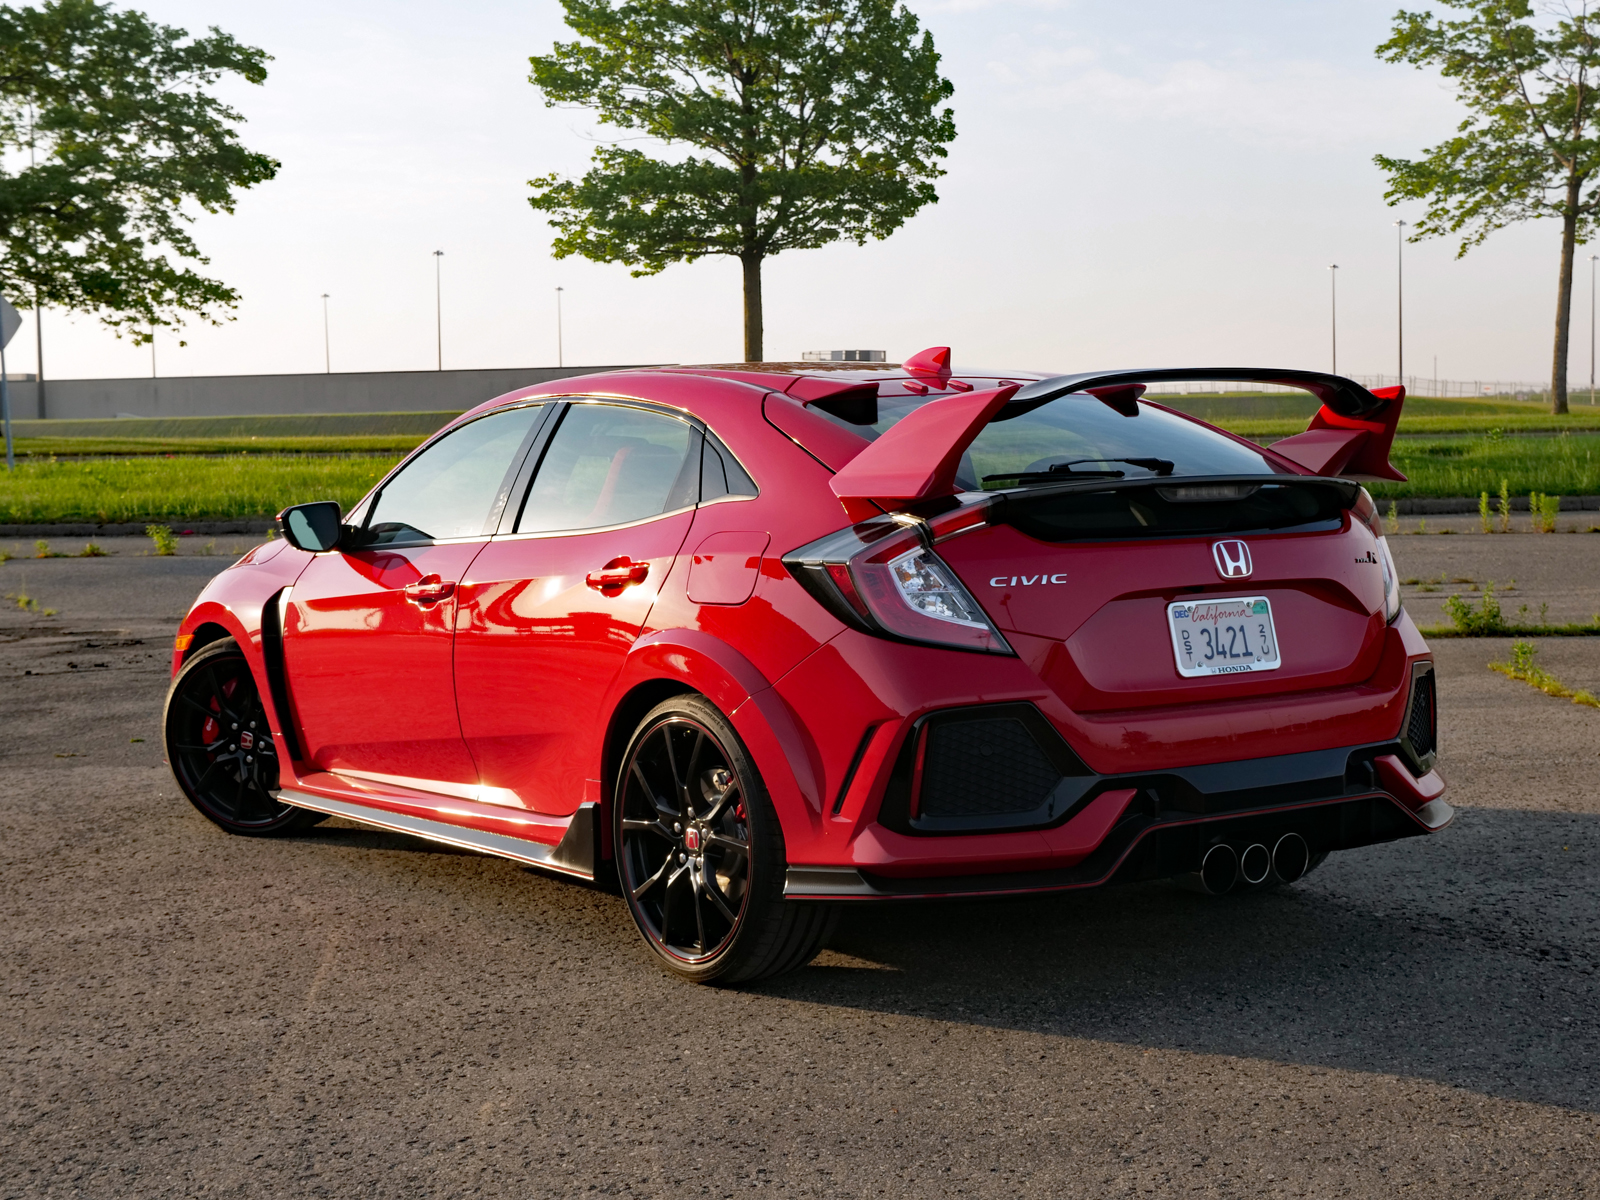 the new honda civic type r is here and it is suffering a slight identity crisis moto networks. Black Bedroom Furniture Sets. Home Design Ideas